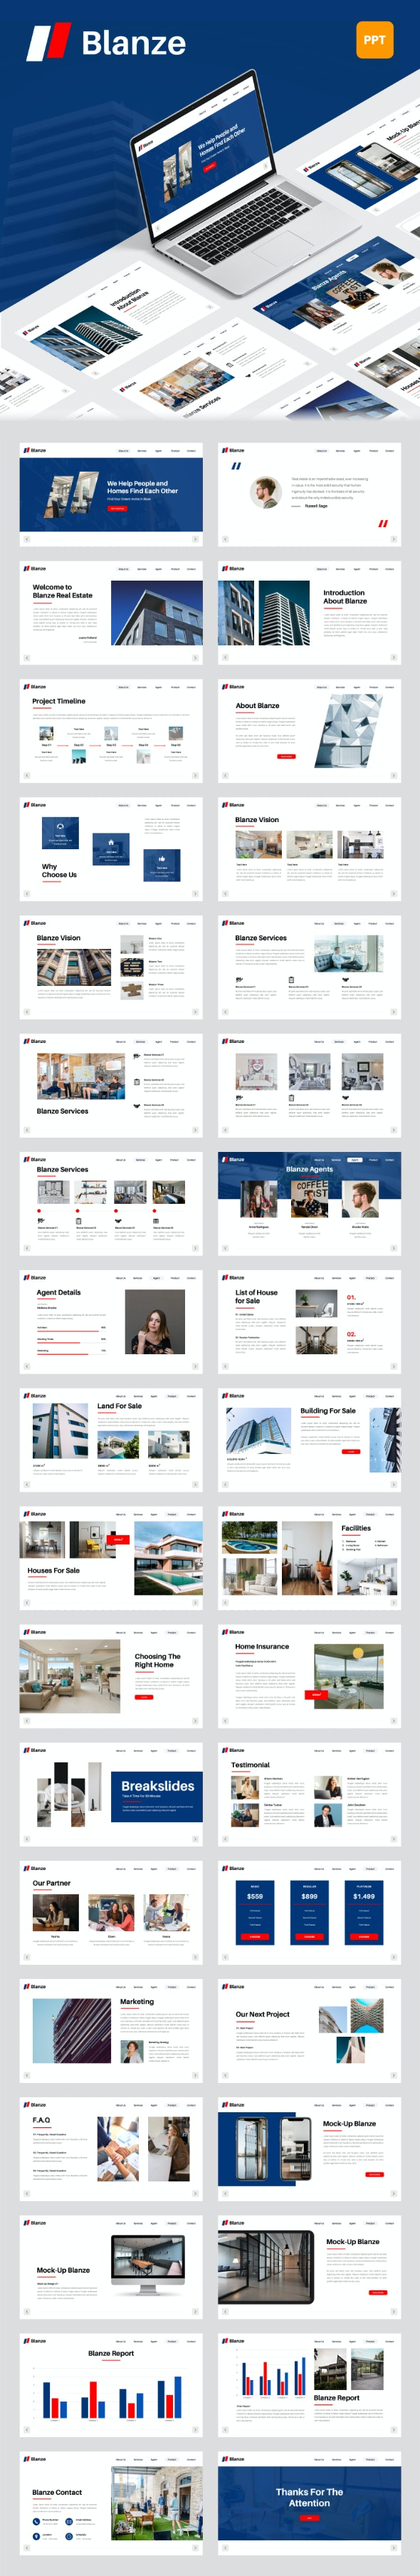 Blanze - Real Estate PowerPoint Template - Business PowerPoint Templates